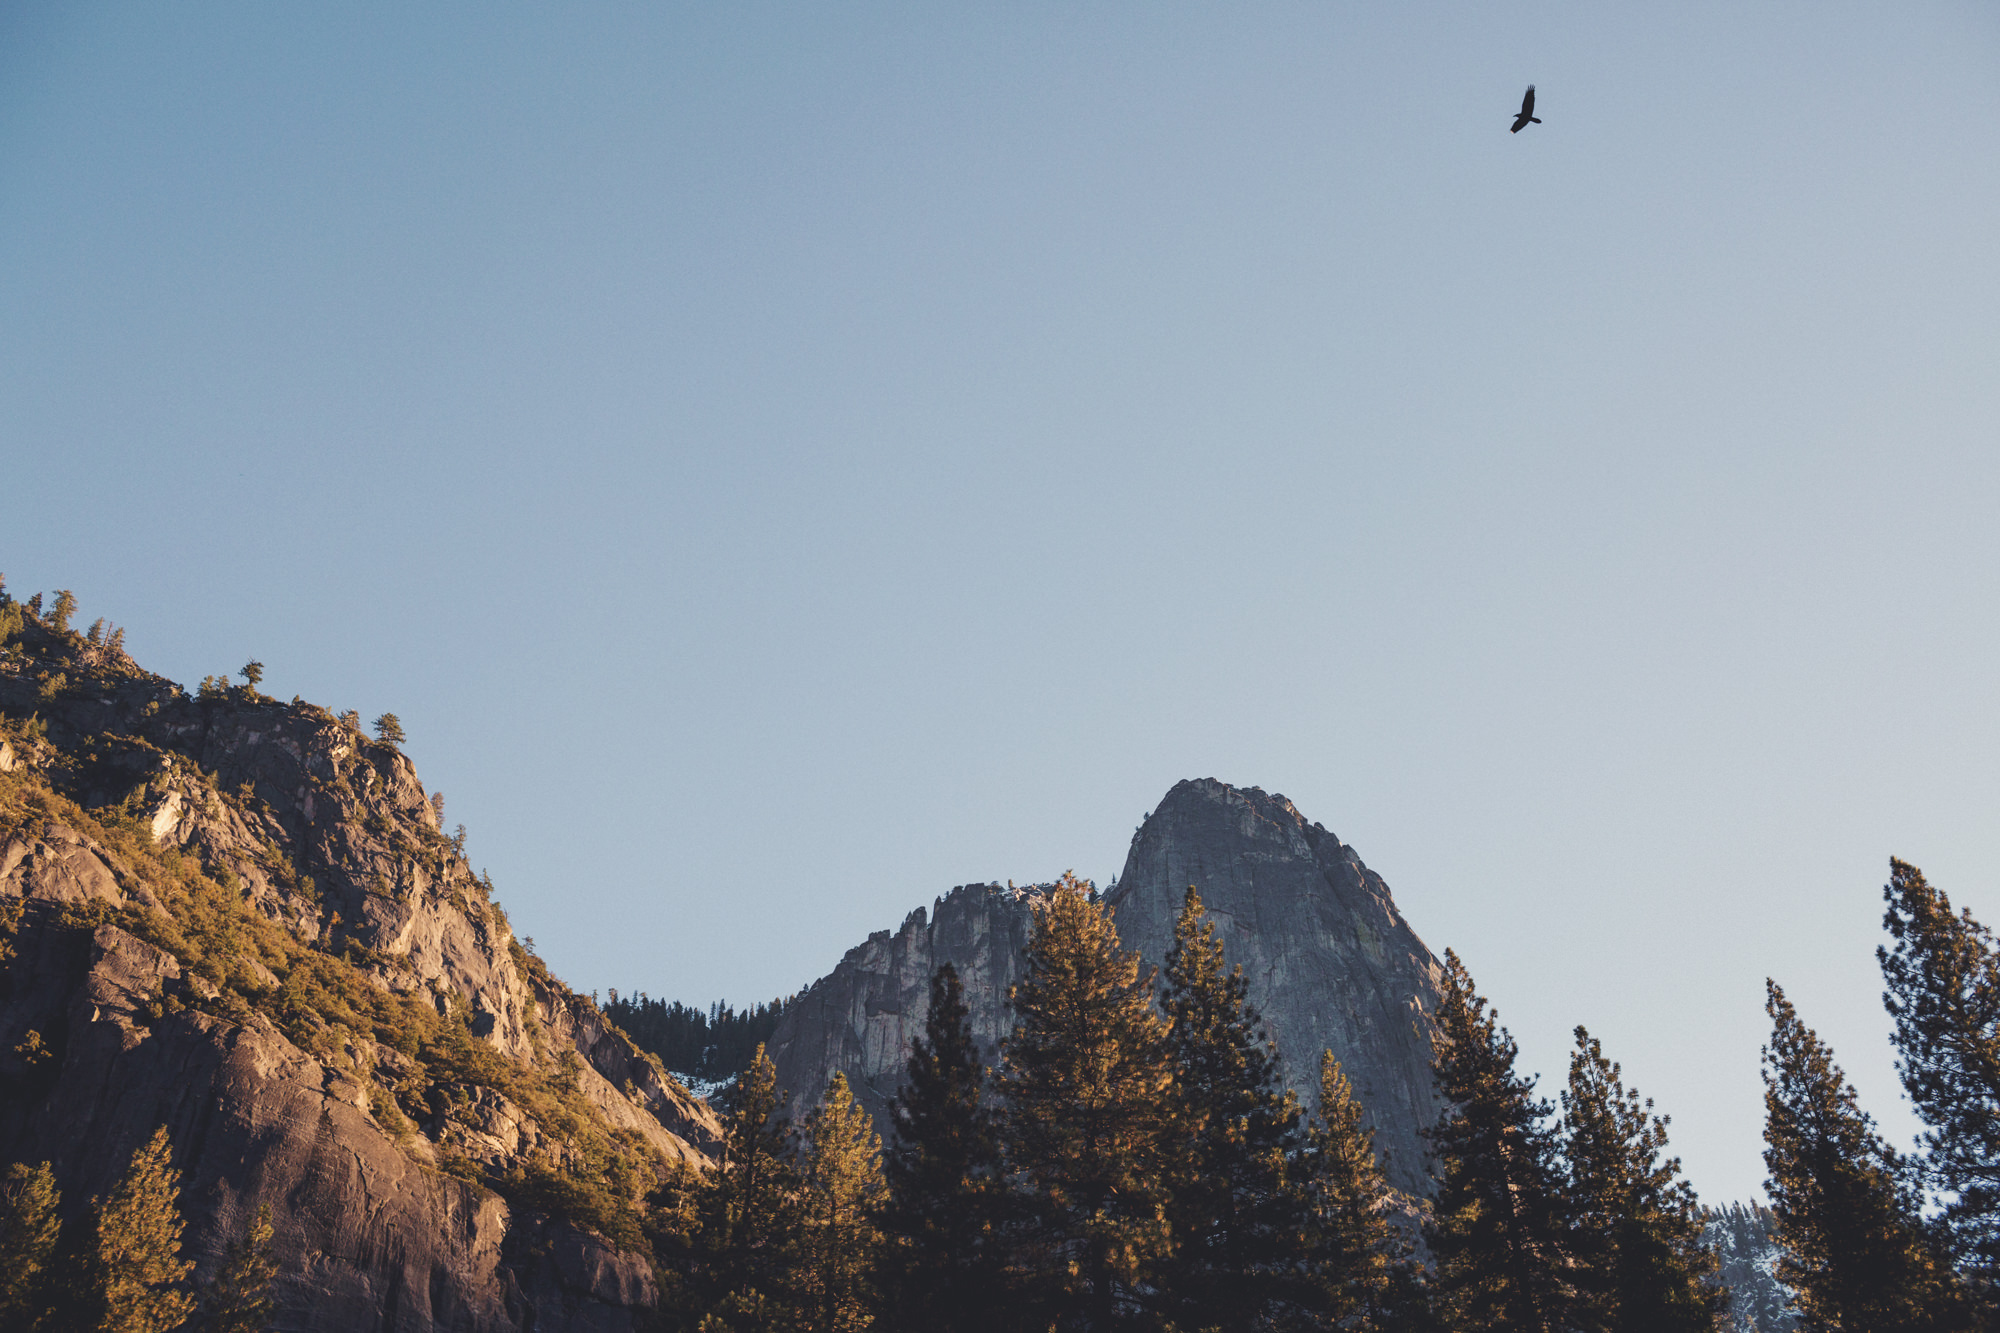 Yosemite wedding ©Anne-Claire Brun 09